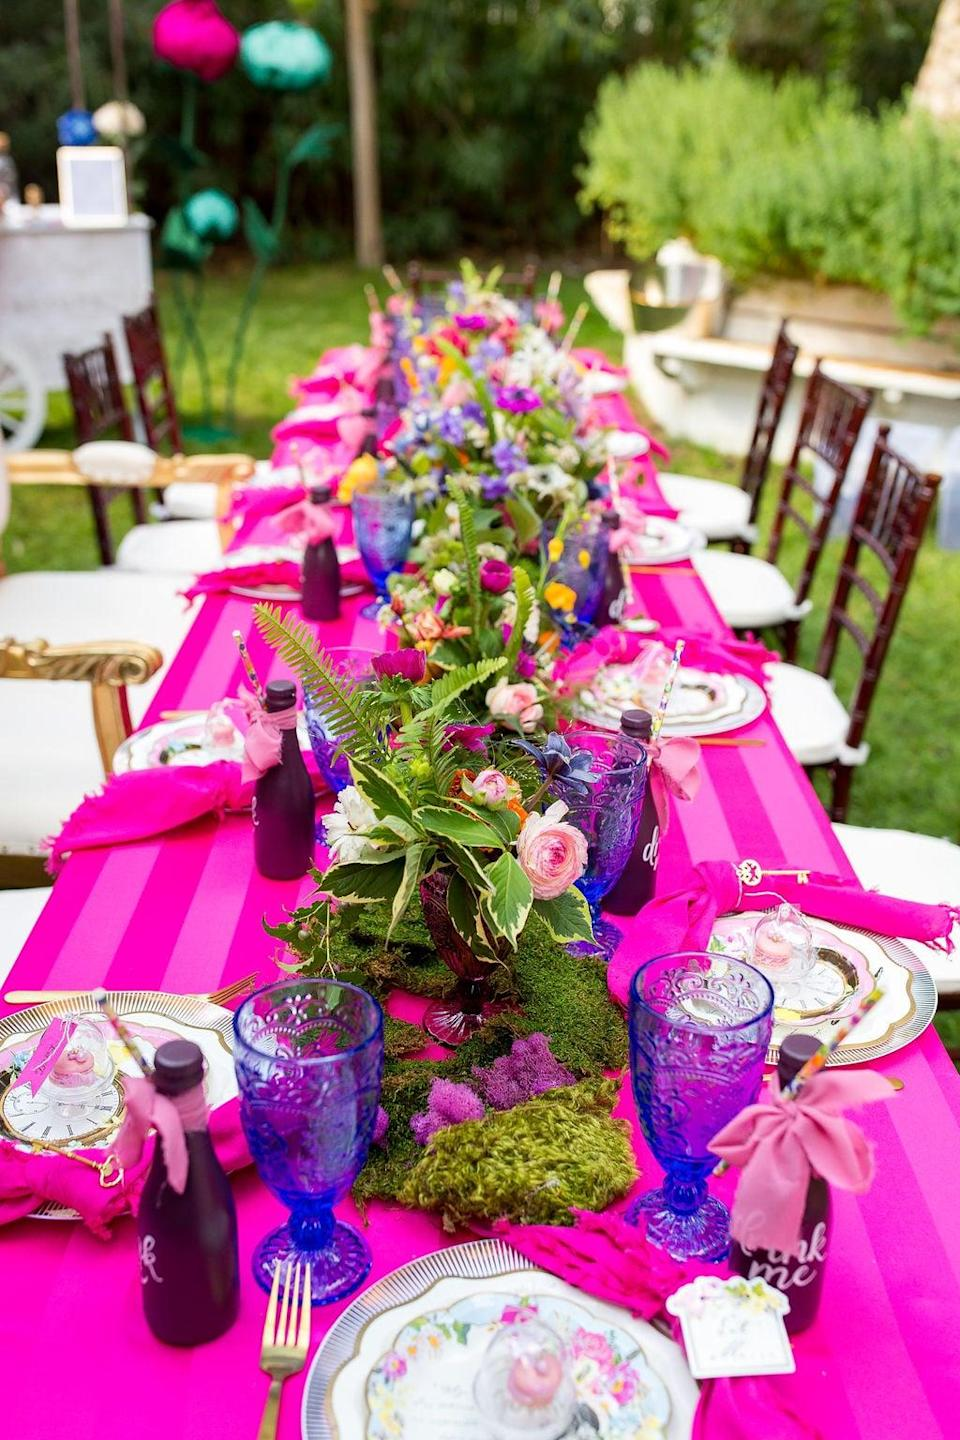 <p>If the bride has a big personality, she needs this colorful theme! Bold colors, bright accents, and brilliant accessories will take this idea to the next level. Pro tip: find cheeky cakes or candy to make this theme even sweeter.</p>